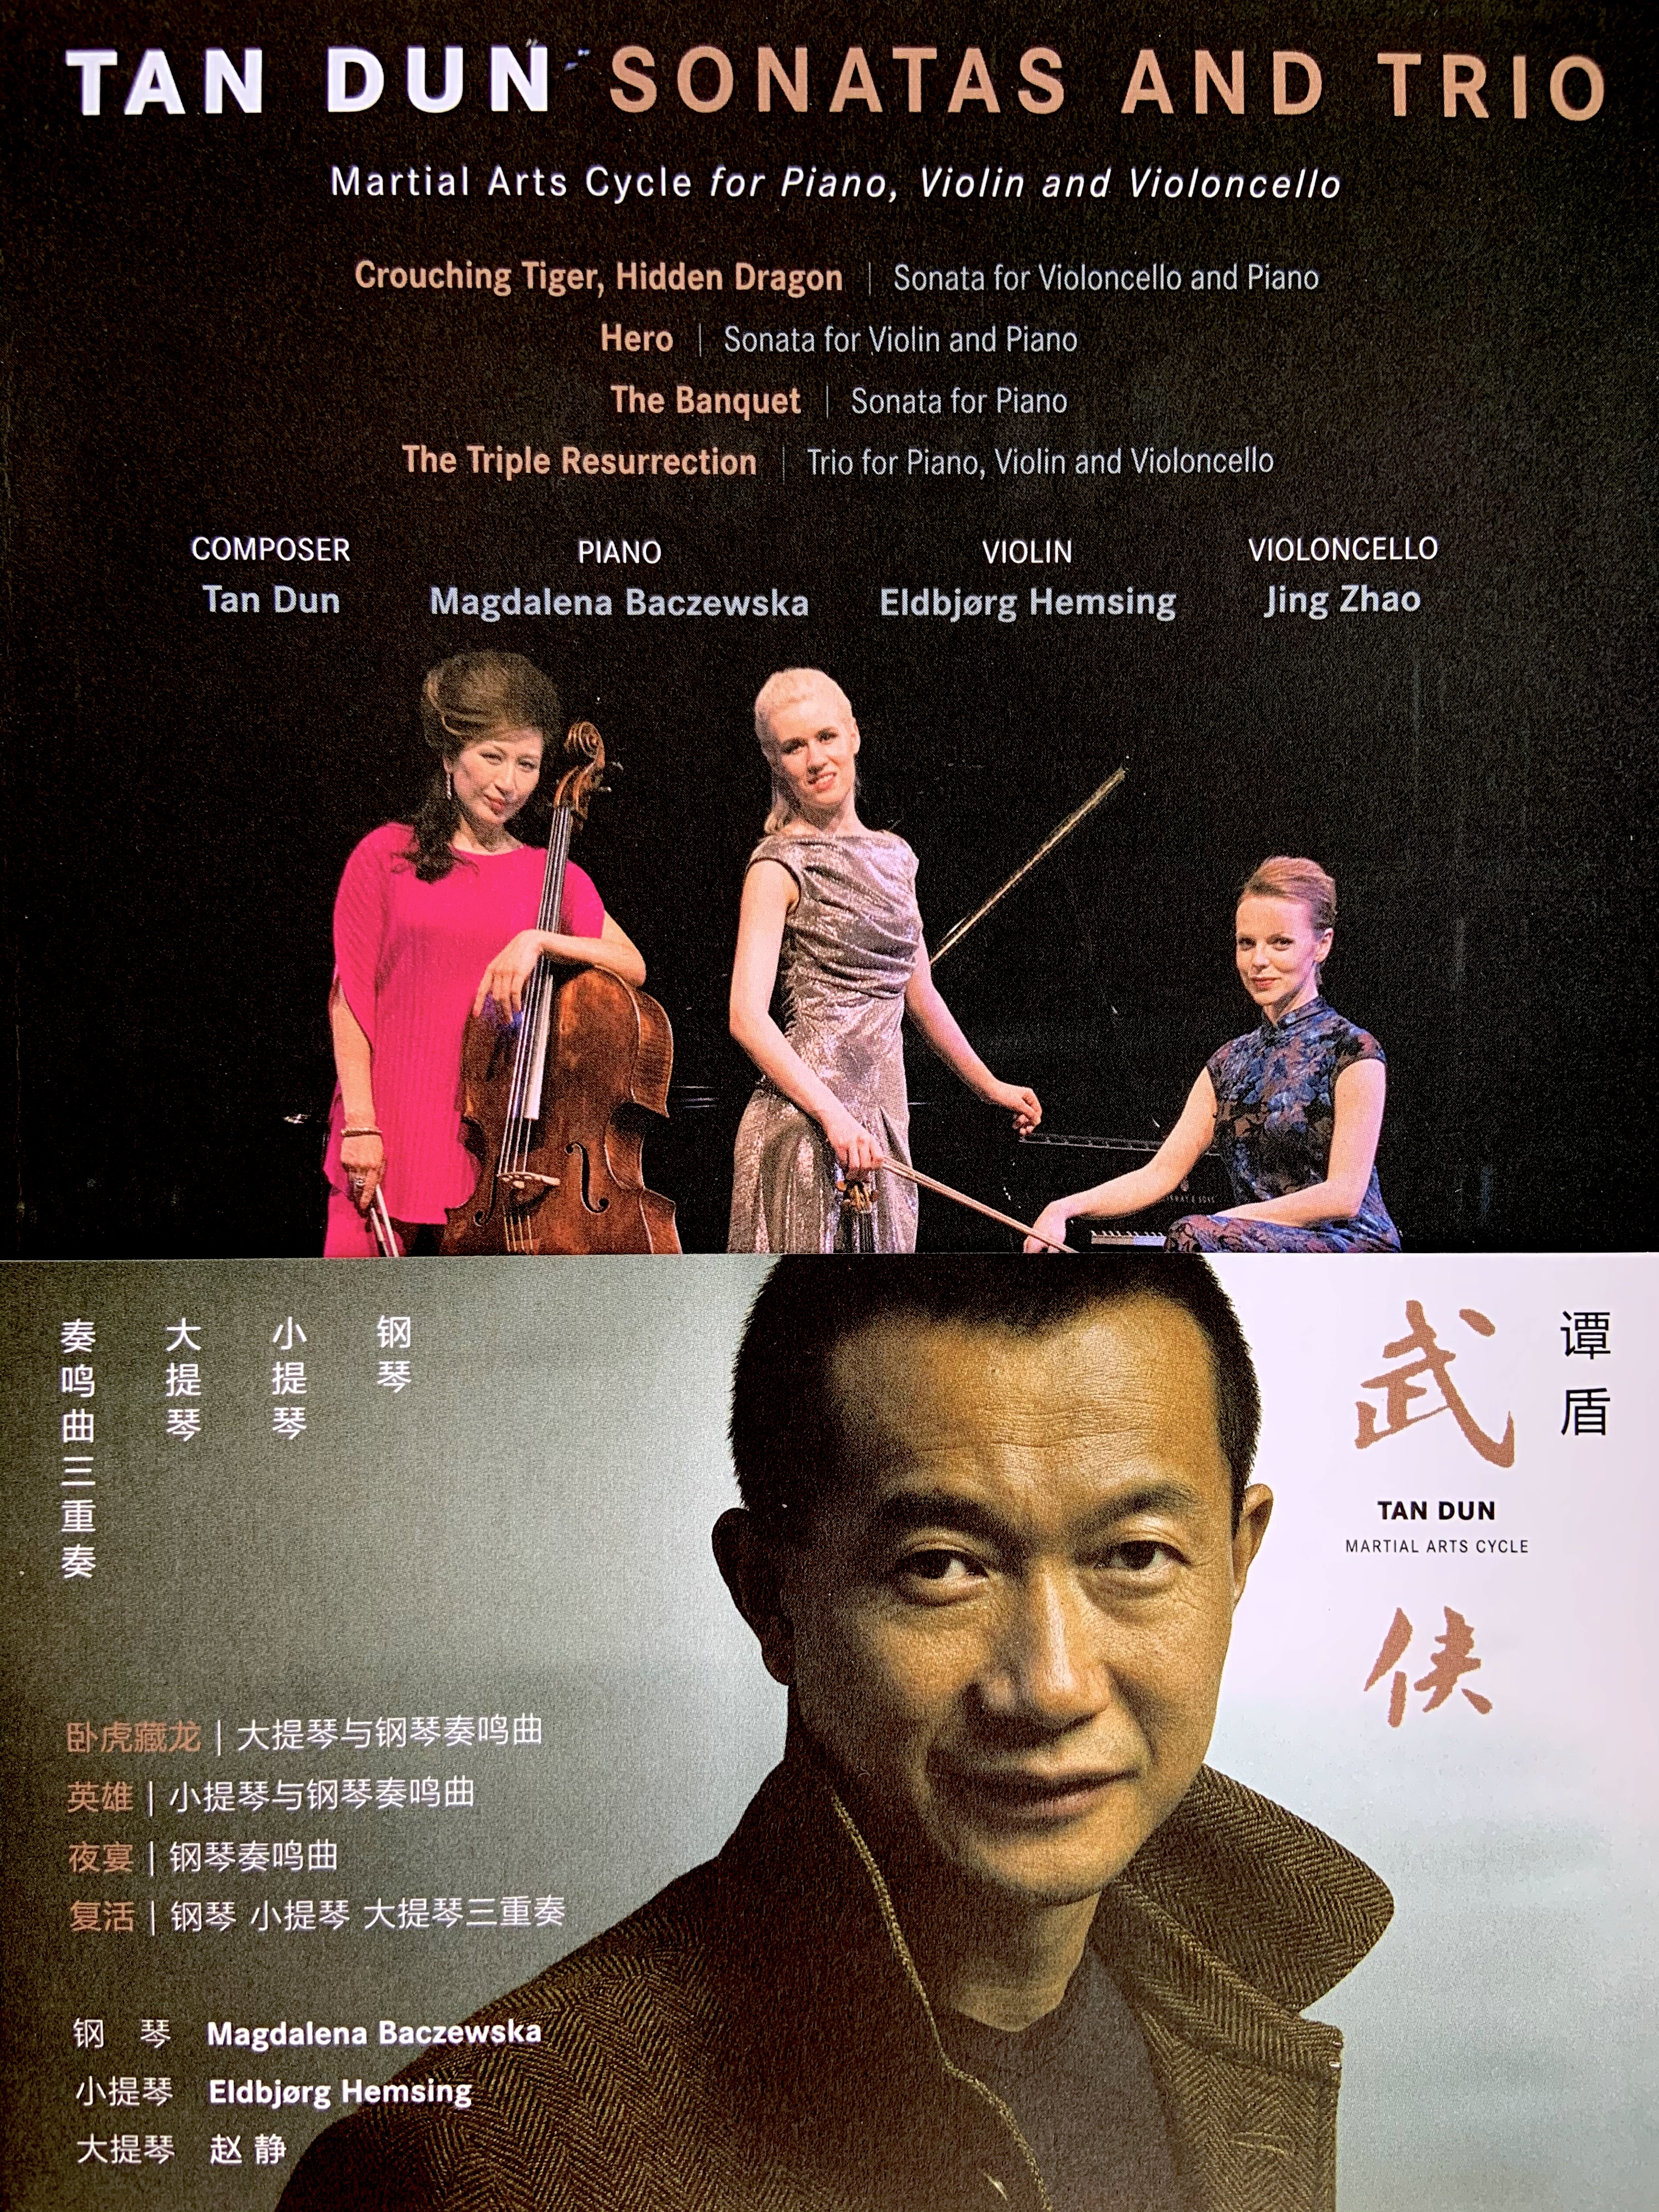 Tan Dun DVD